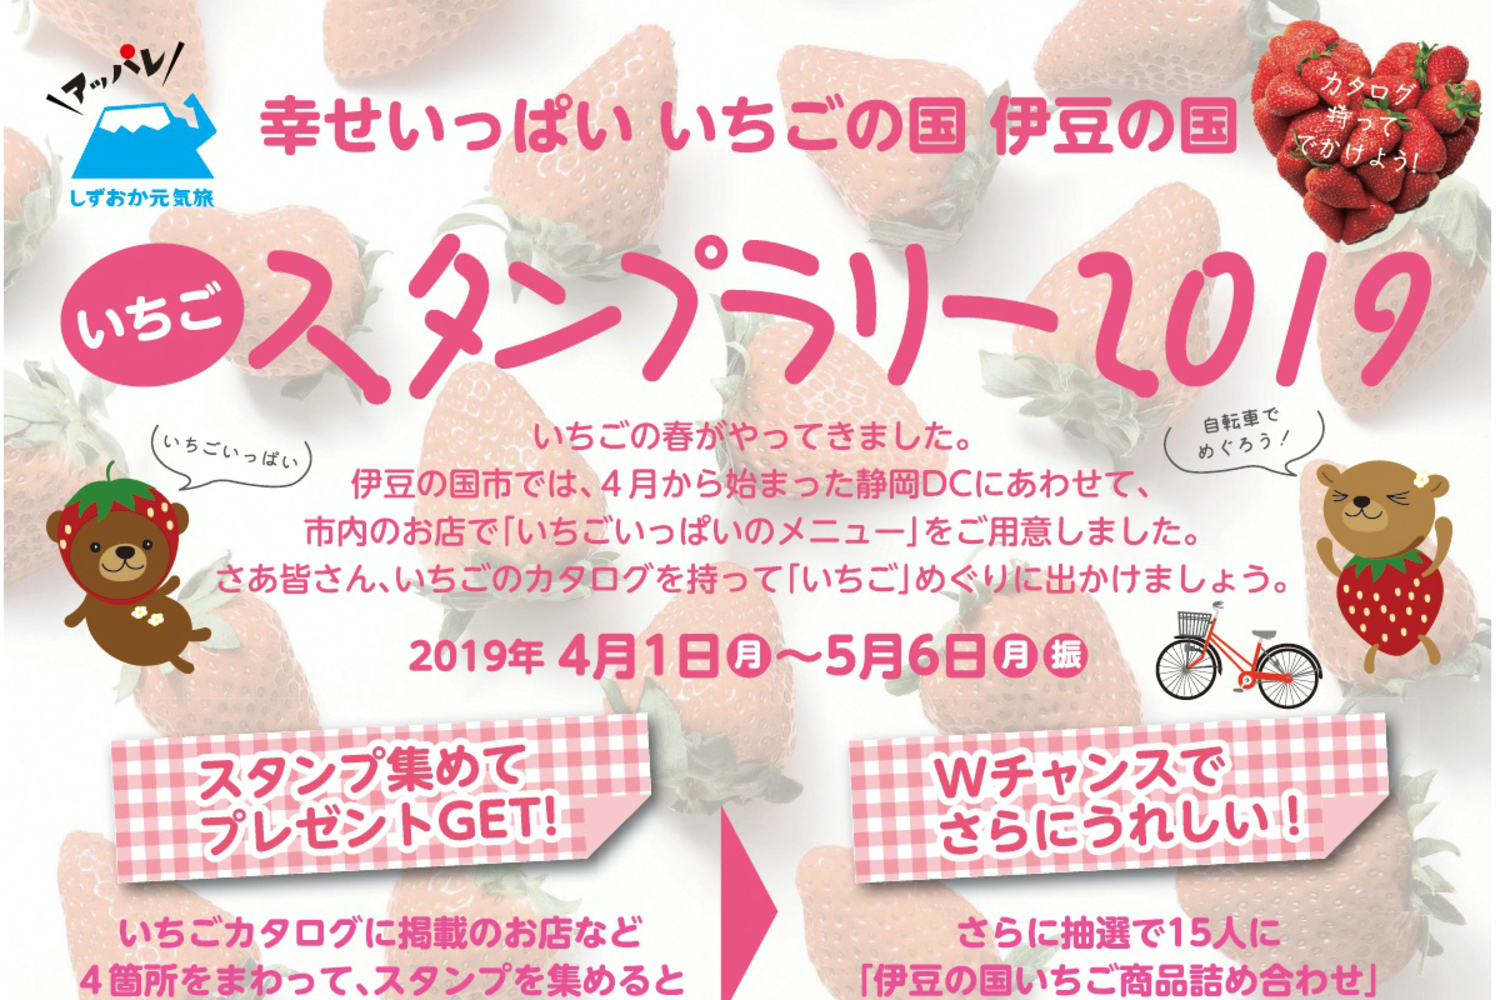 Izunokuni strawberry stamp rally 2019 holding!